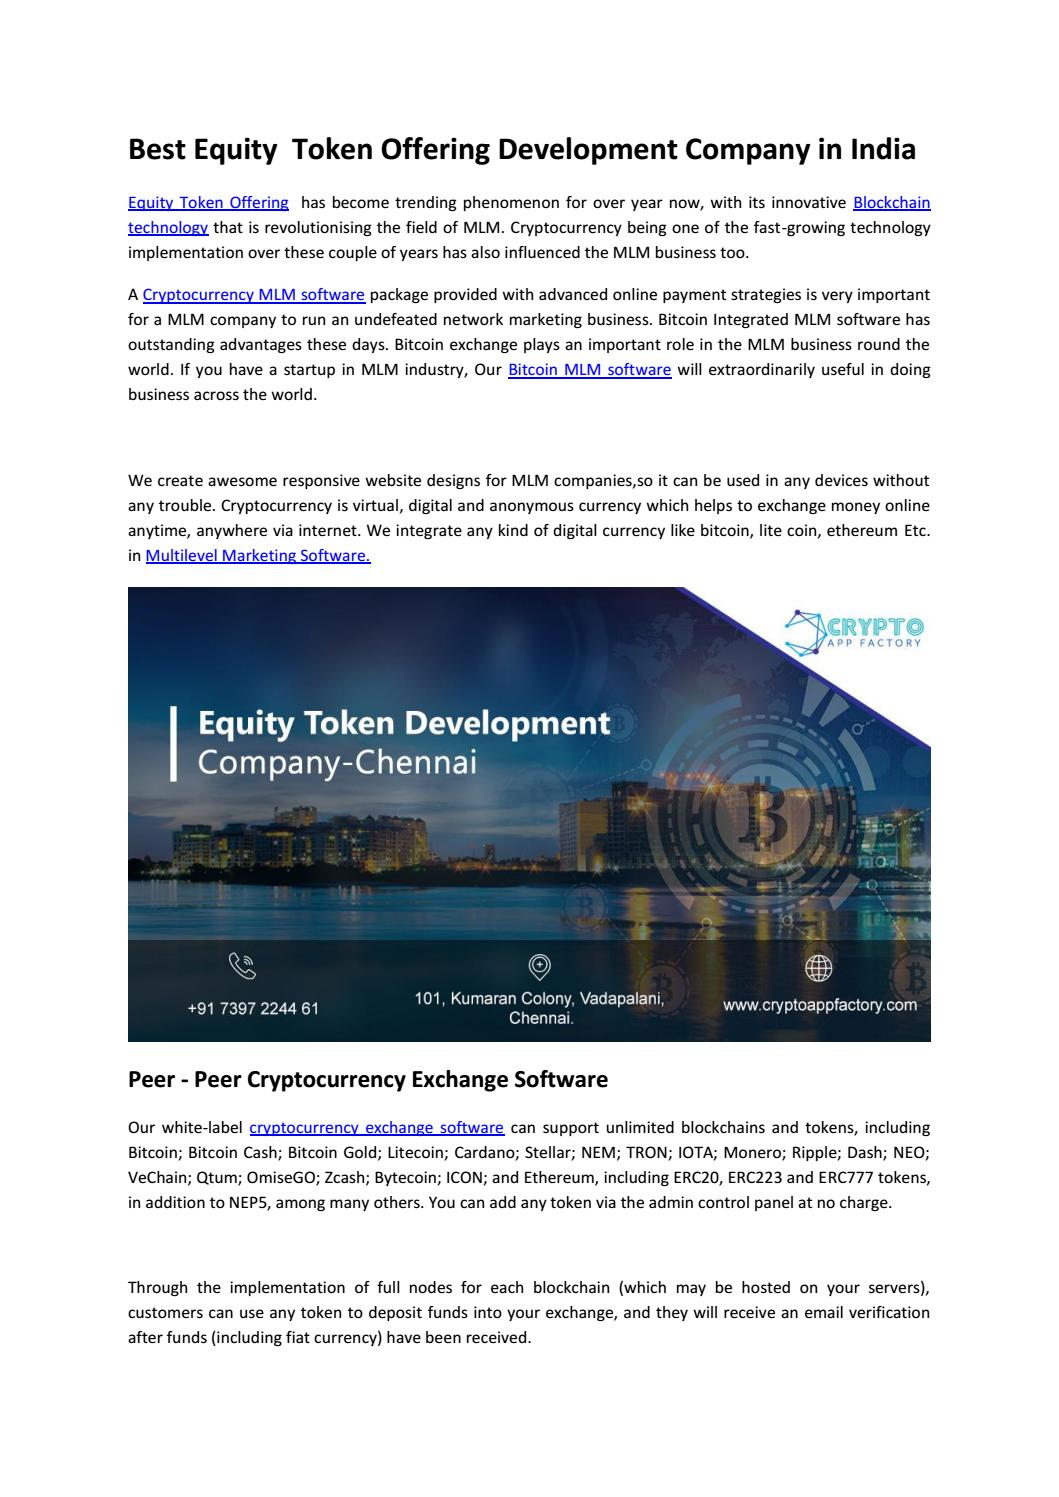 Best Equity Token Offering Development Company in India by